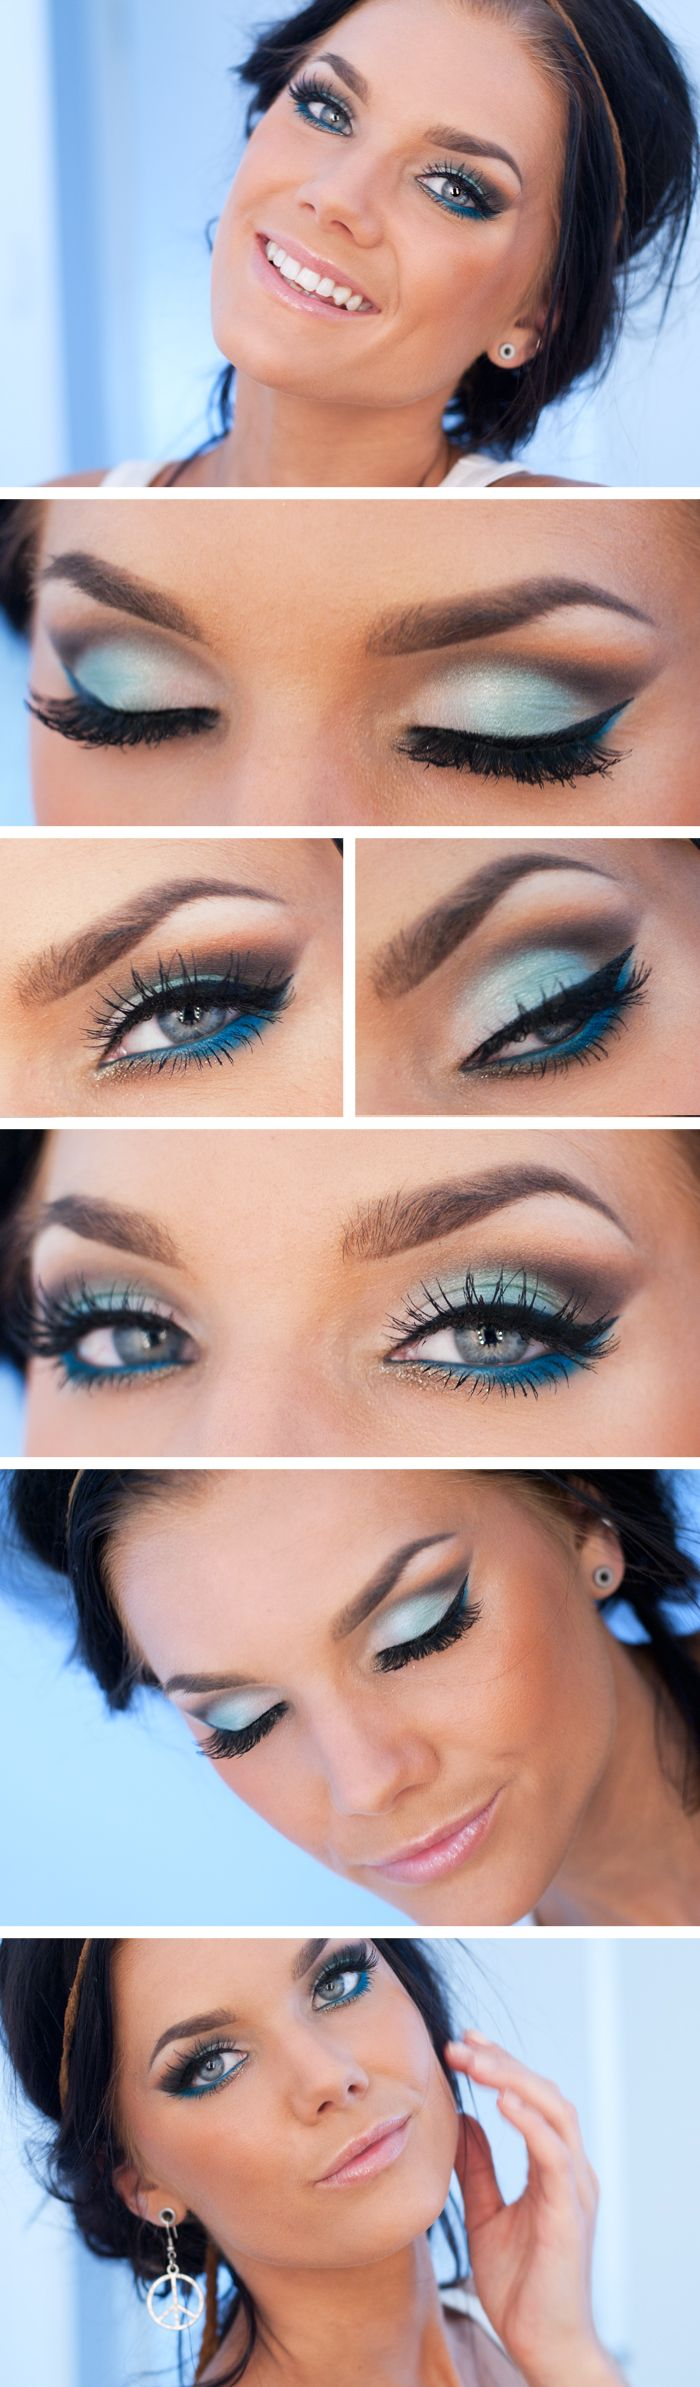 A Beautiful Array Of Blues Soft Mint Teal And Maybe Cerulean Blue In 2020 Eye Makeup Blue Eye Makeup Hair Makeup